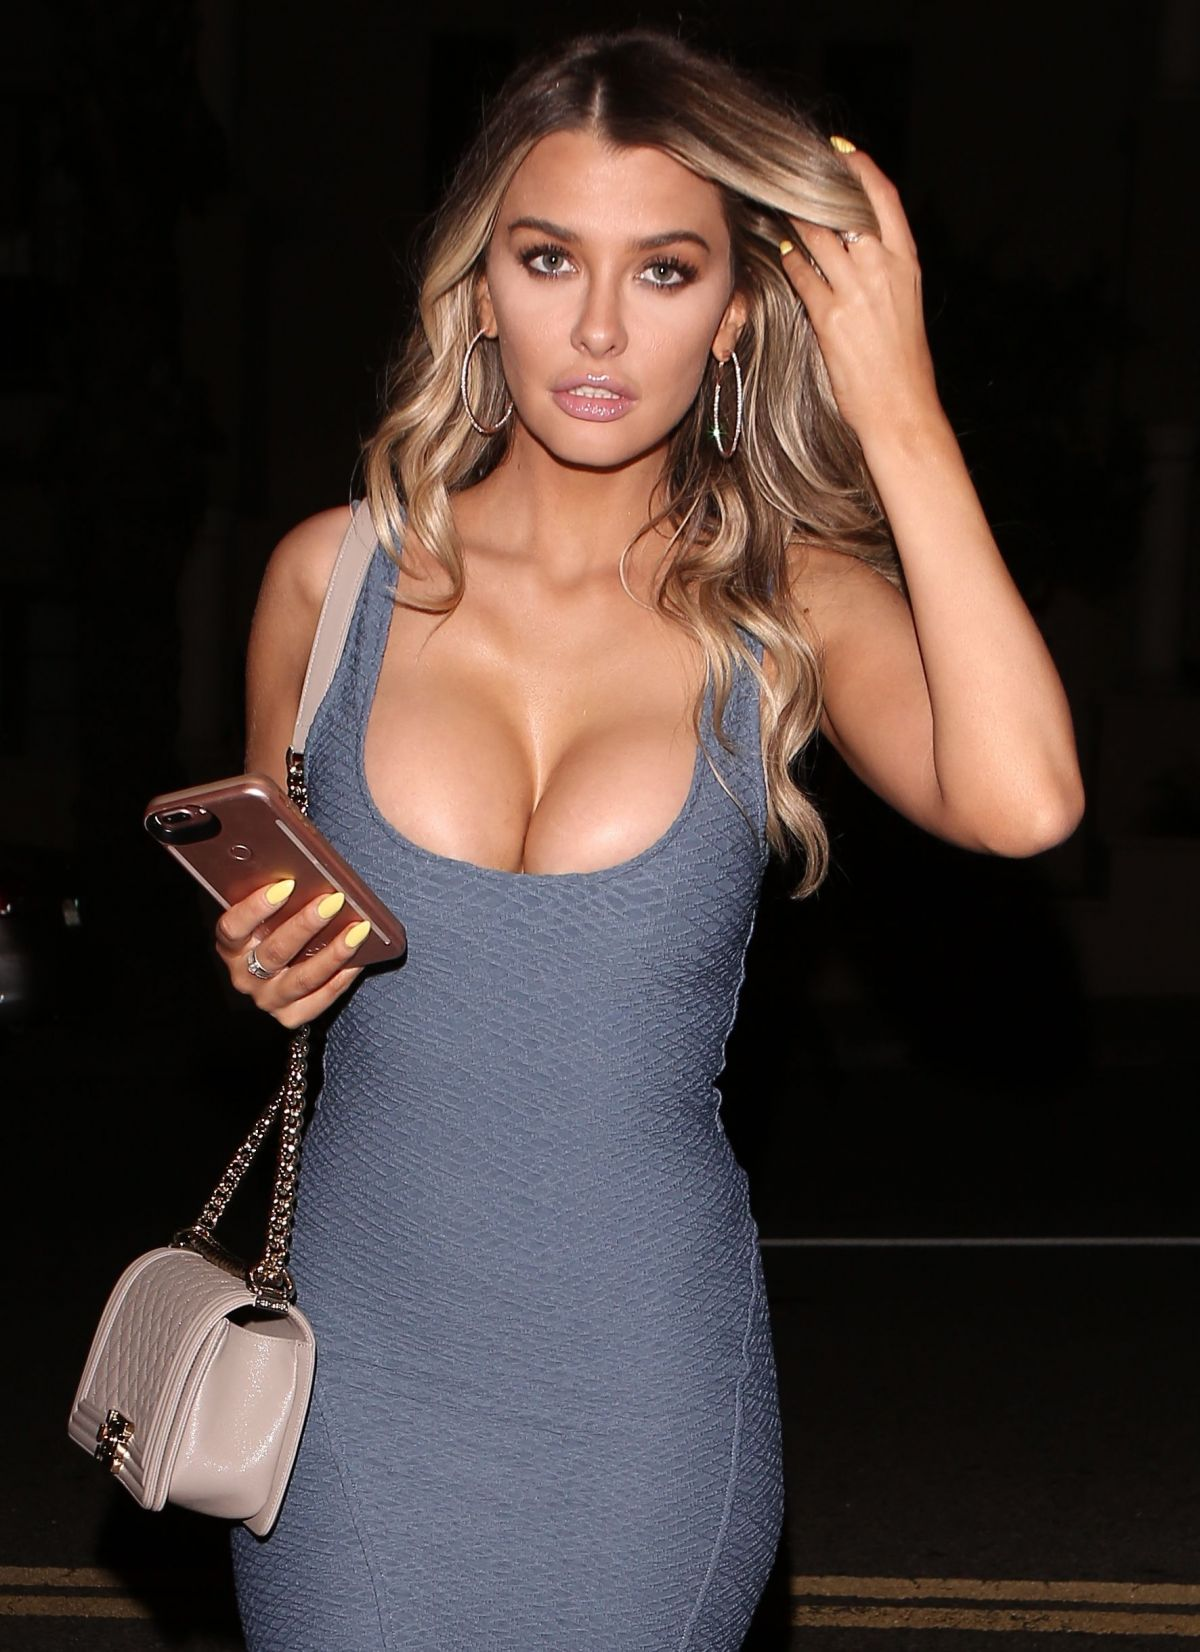 Watch Emily sears hot video